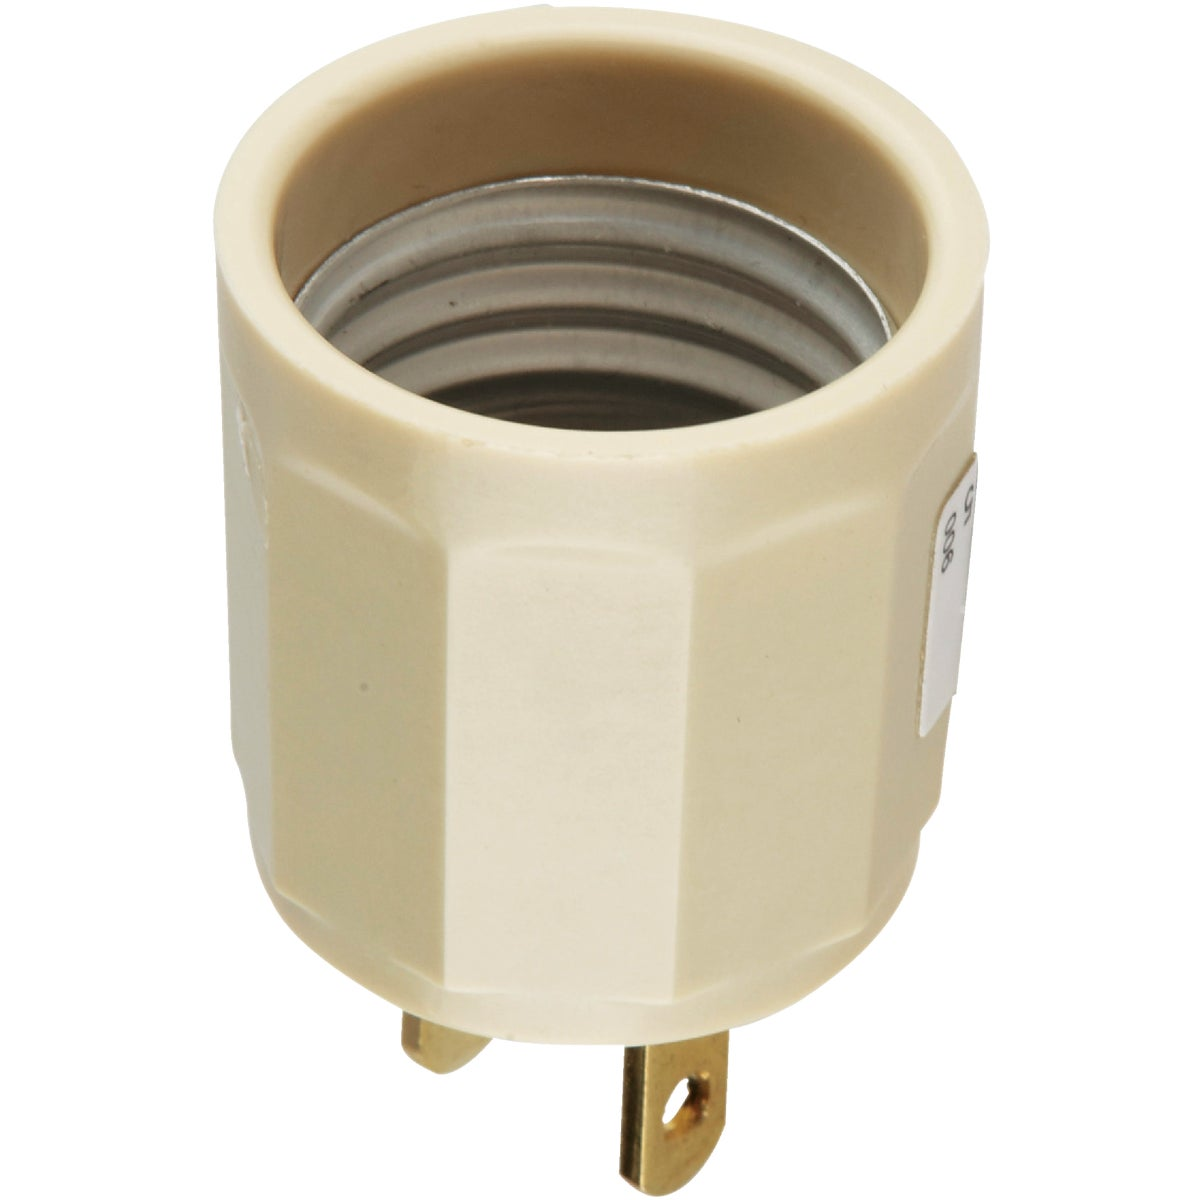 OUTLT/LAMPHOLDER ADAPTER - 006-00061I by Leviton Mfg Co